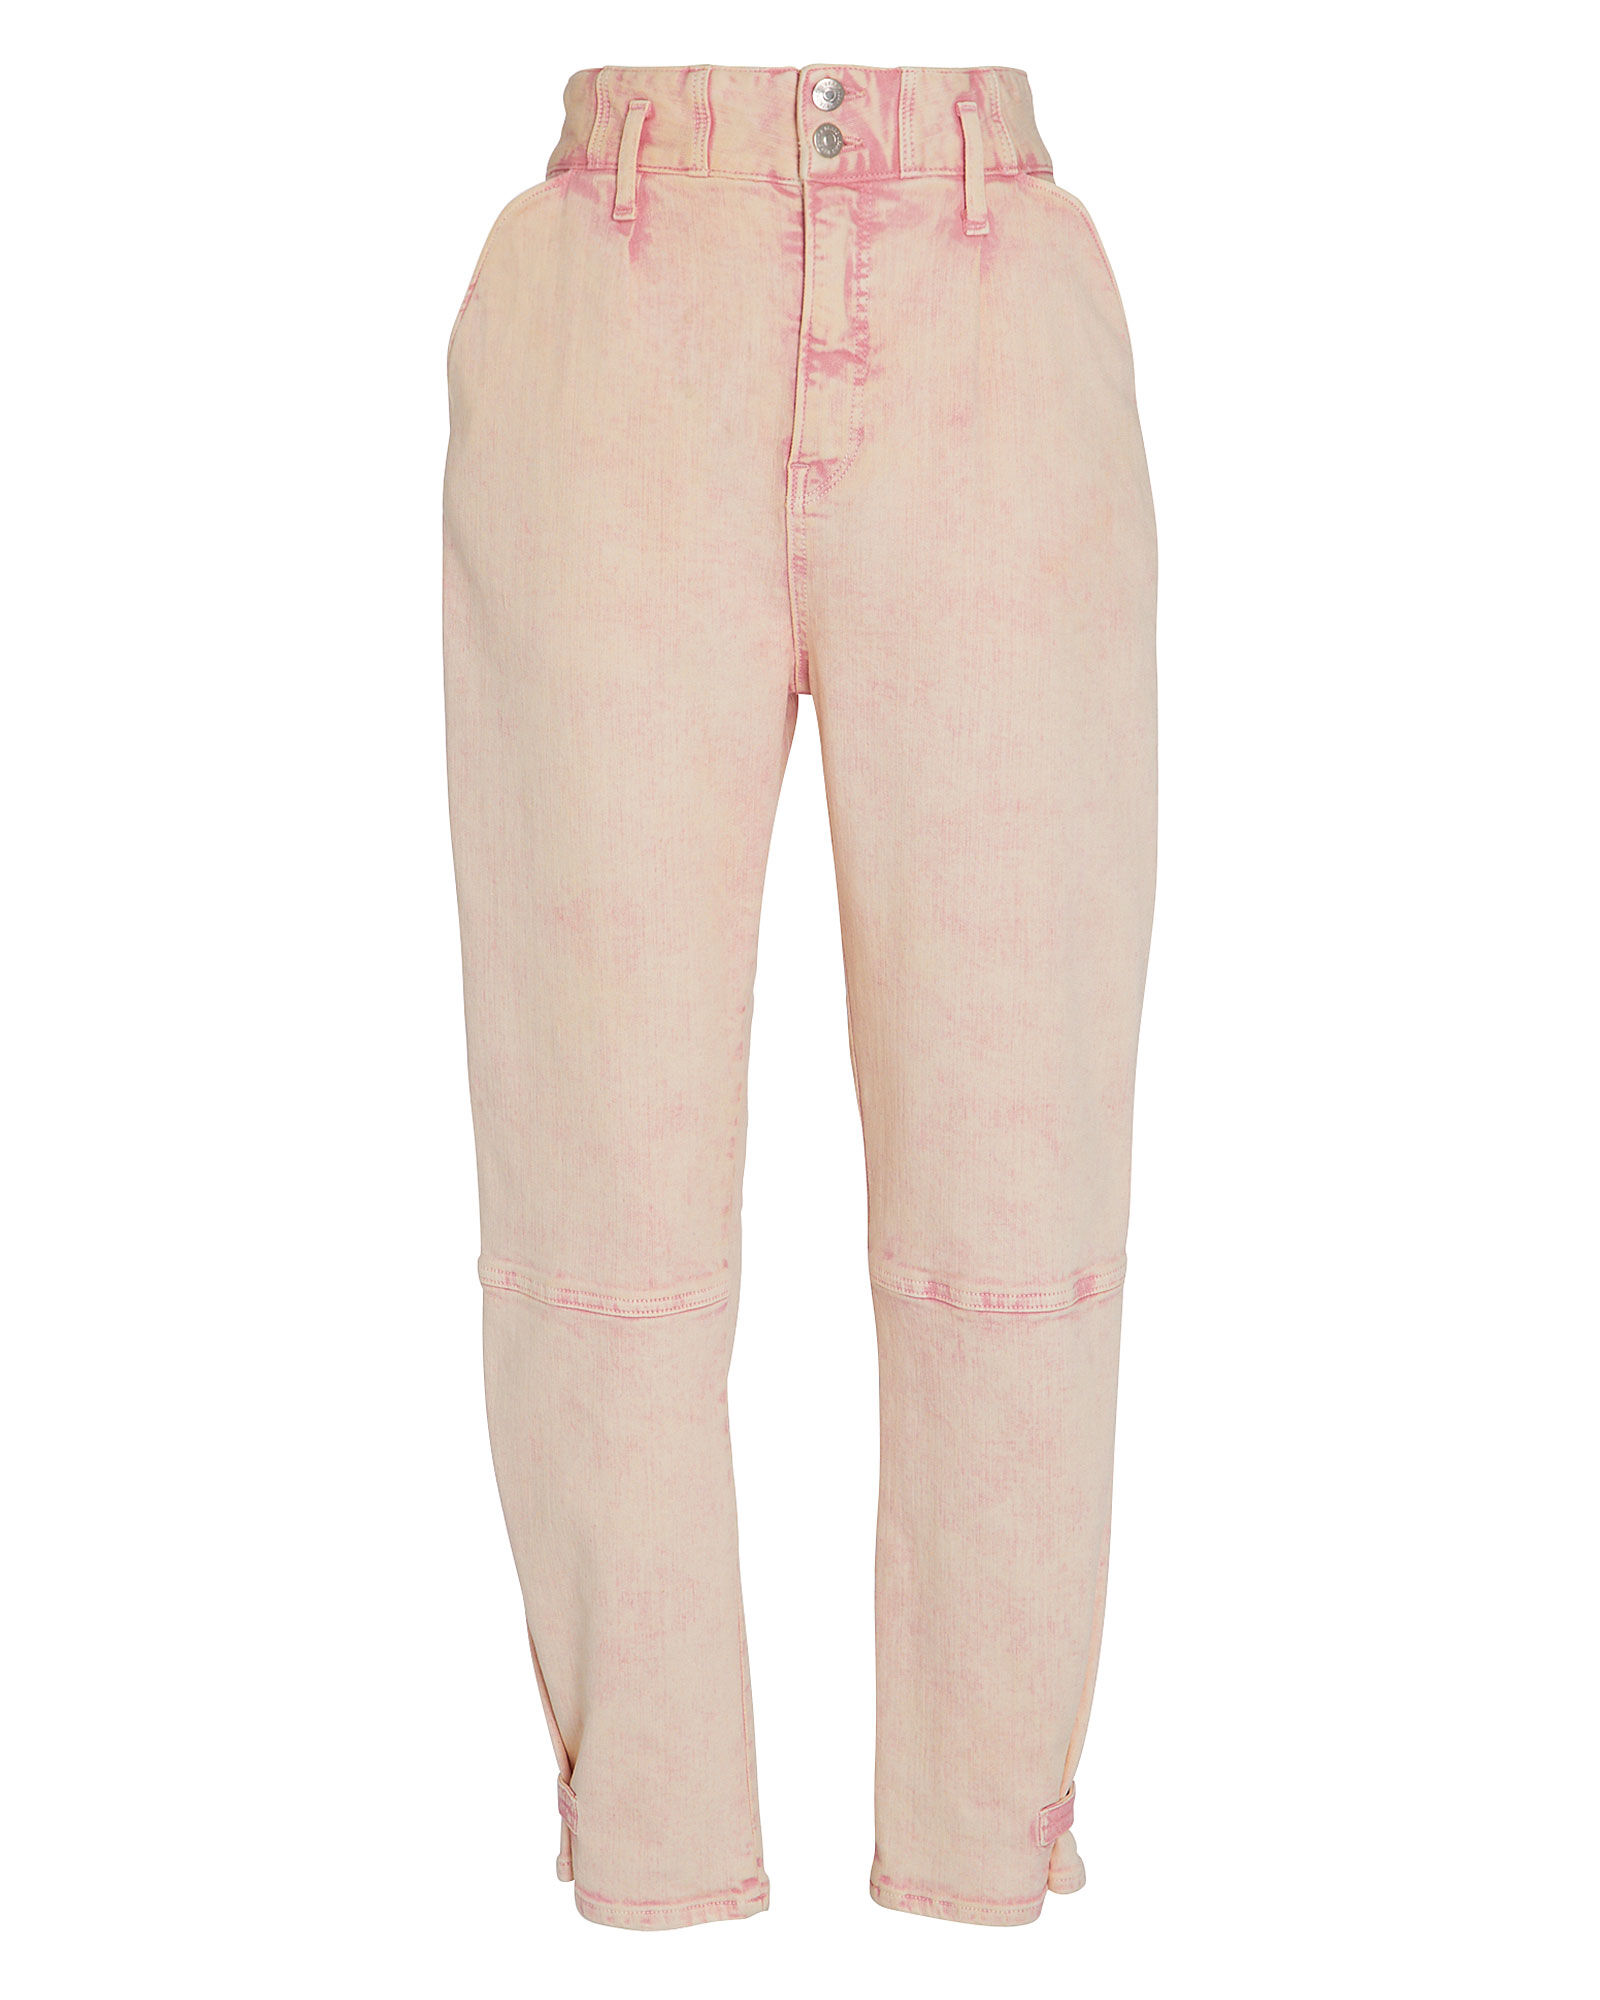 Monika Tapered Acid Wash Jeans, PINK, hi-res